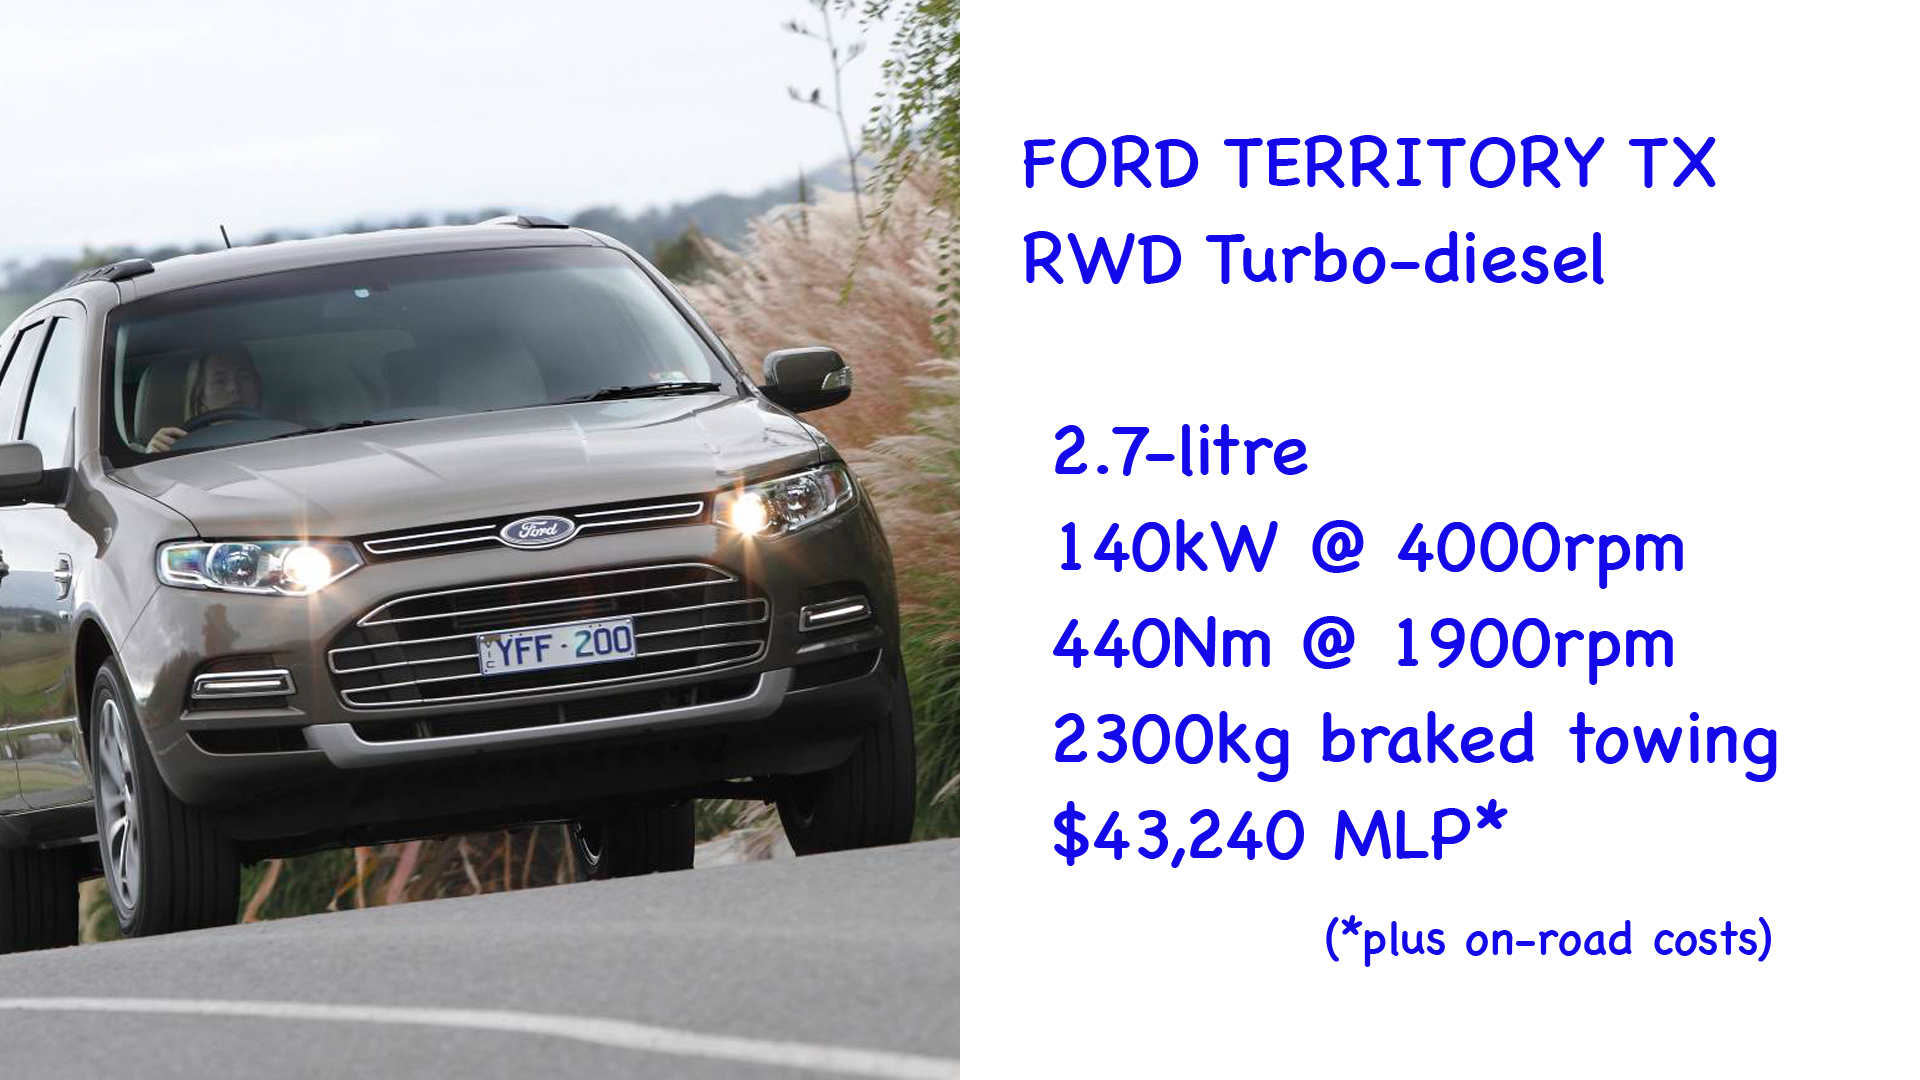 ABOVE: Ford Territory